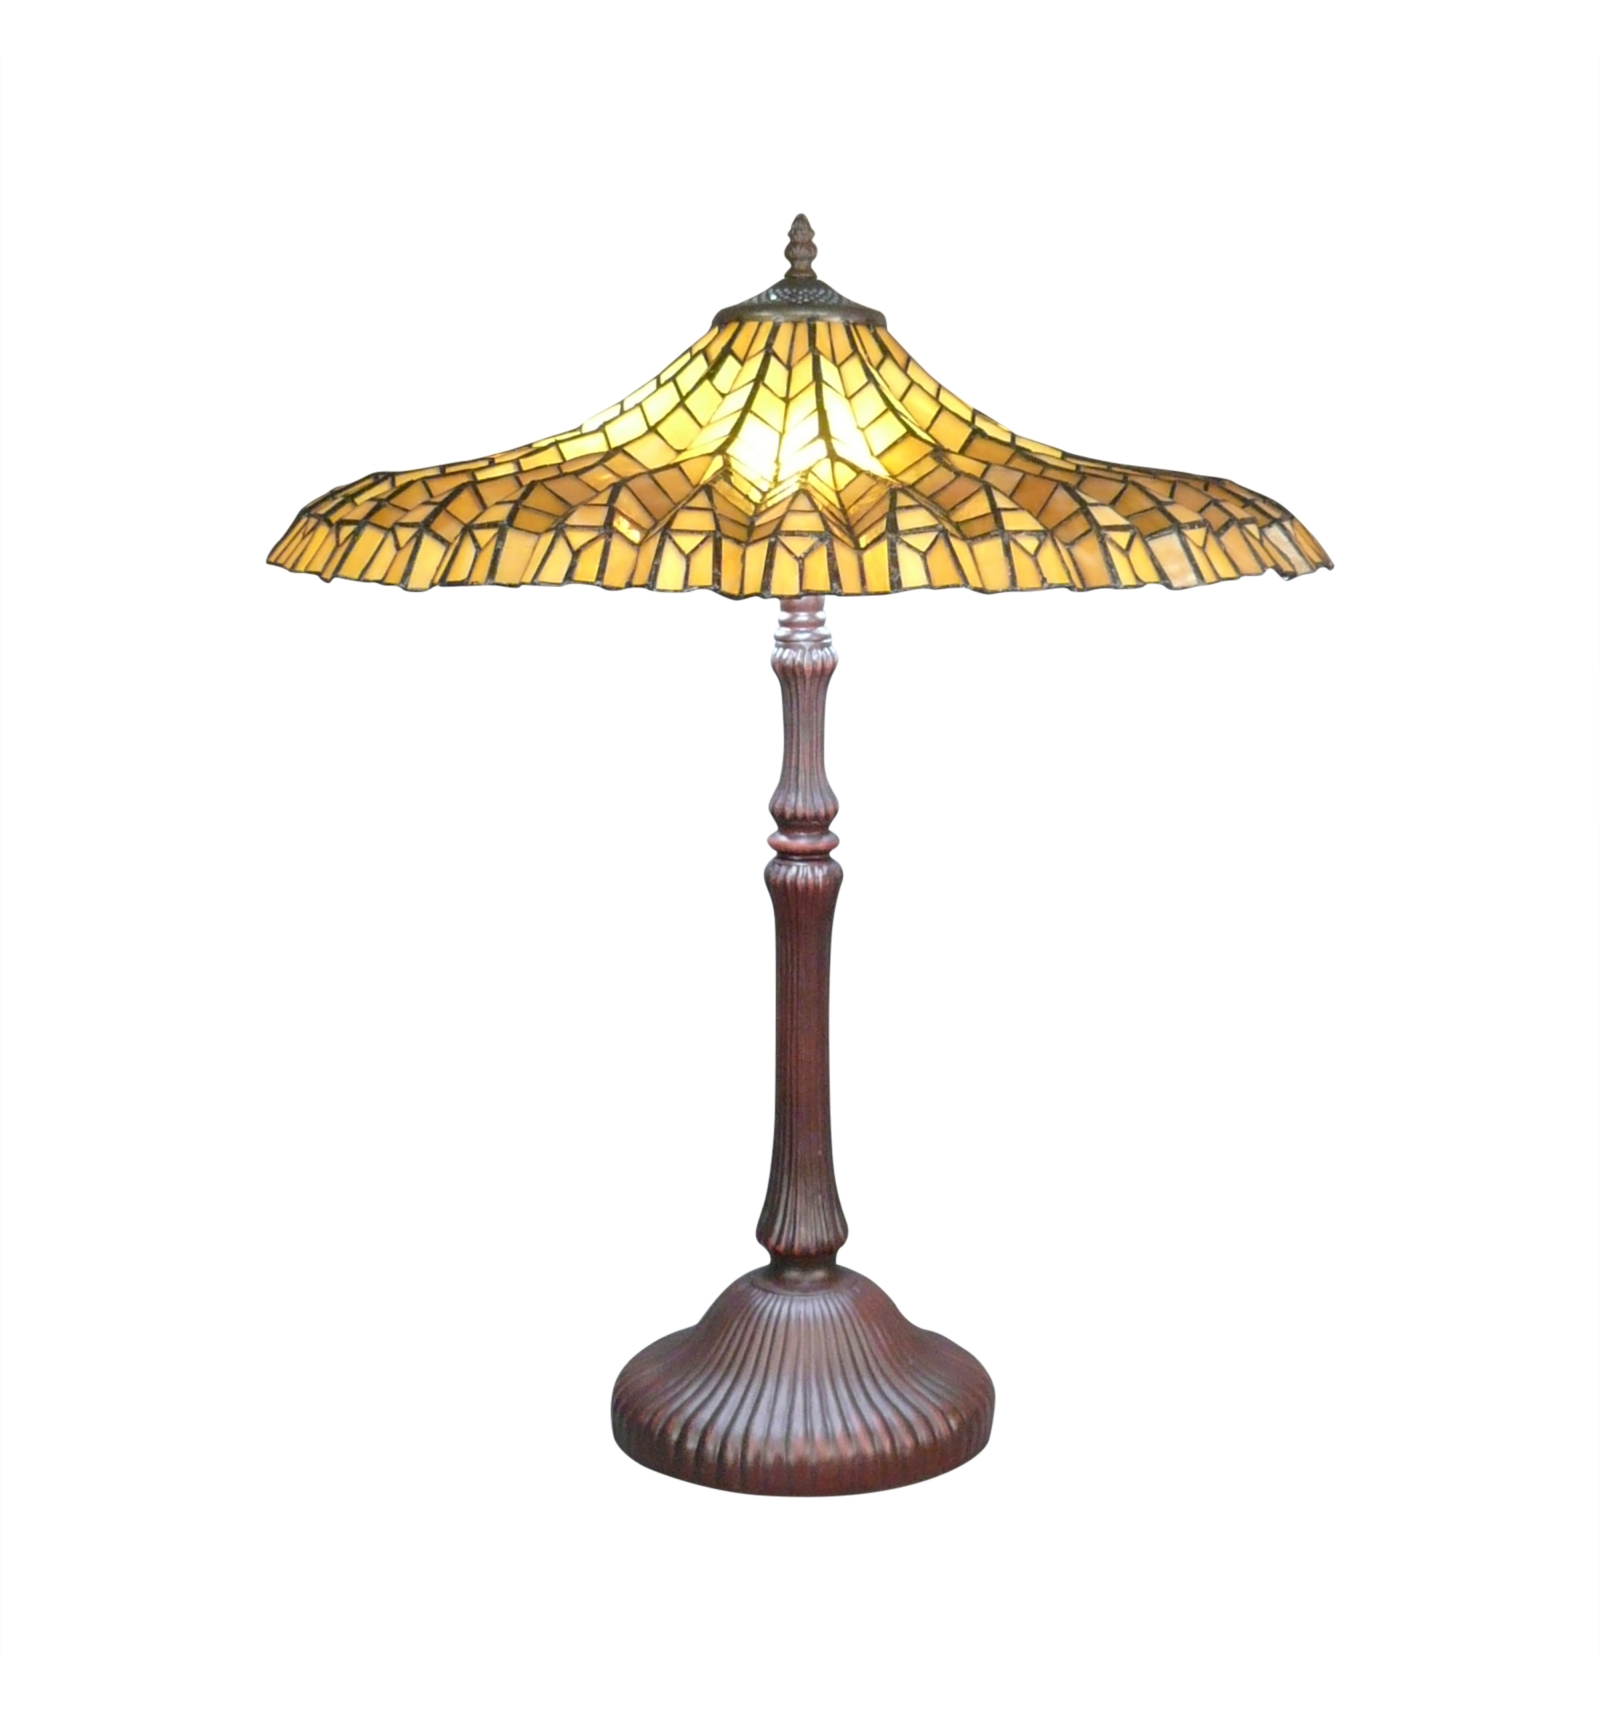 Tiffany Table Lamp Lotus Yellow Tiffany Style Lamps Shop For Uk